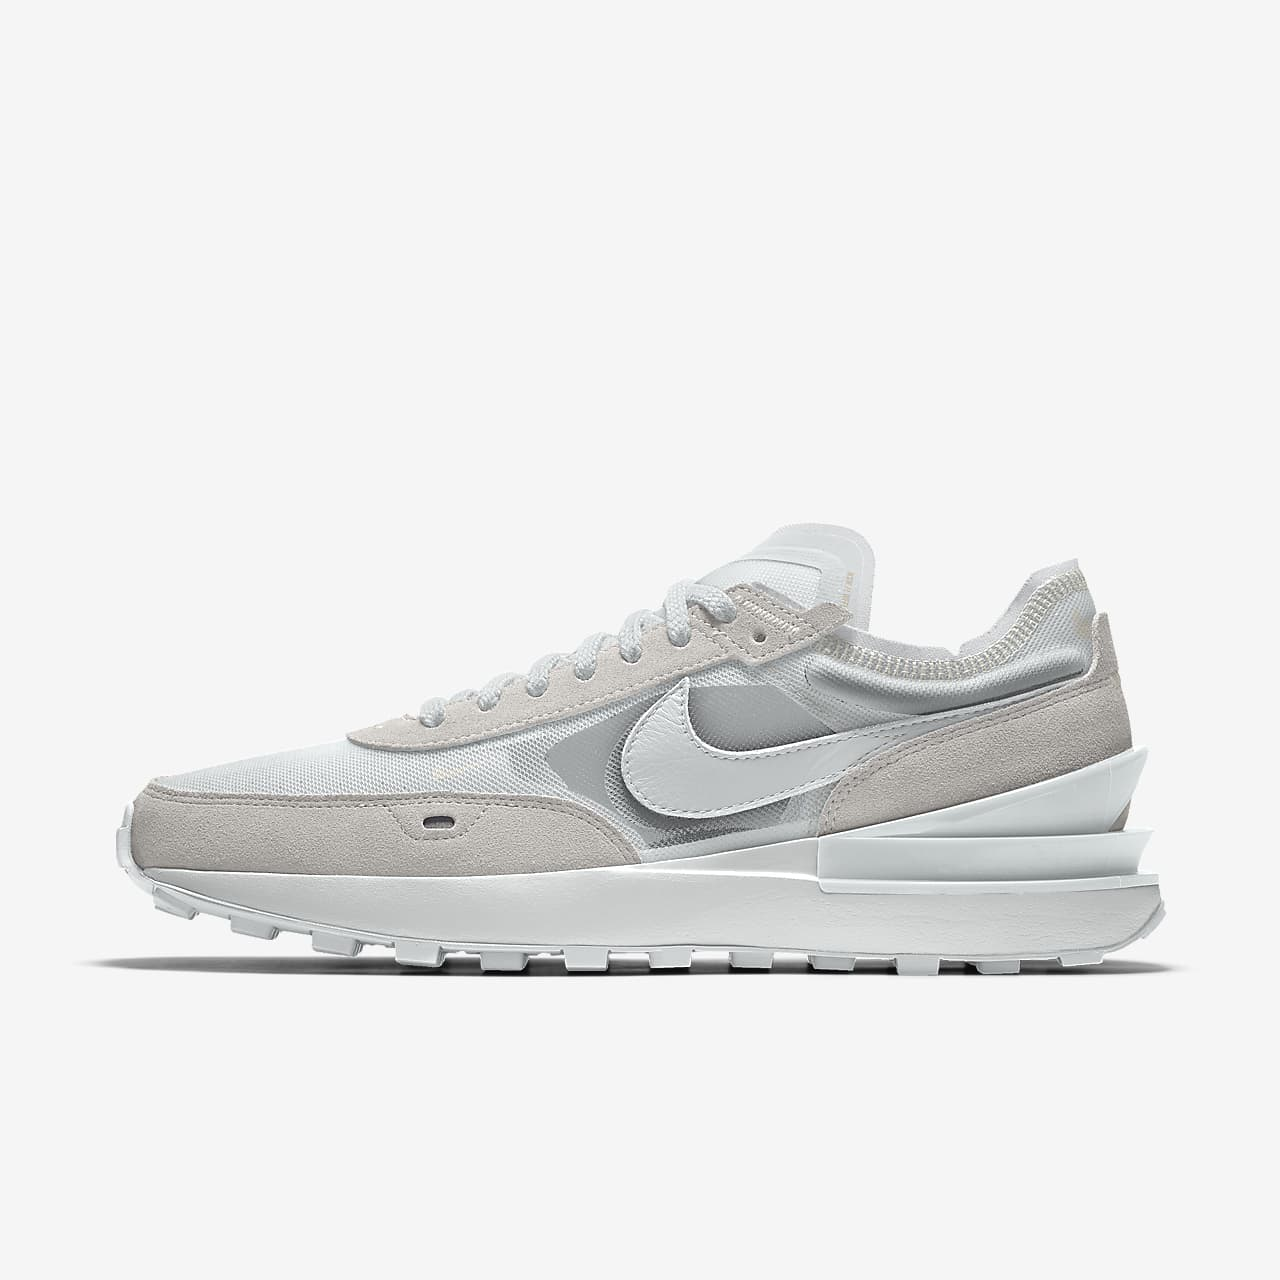 Chaussure personnalisable Nike Waffle1 By You pour Femme